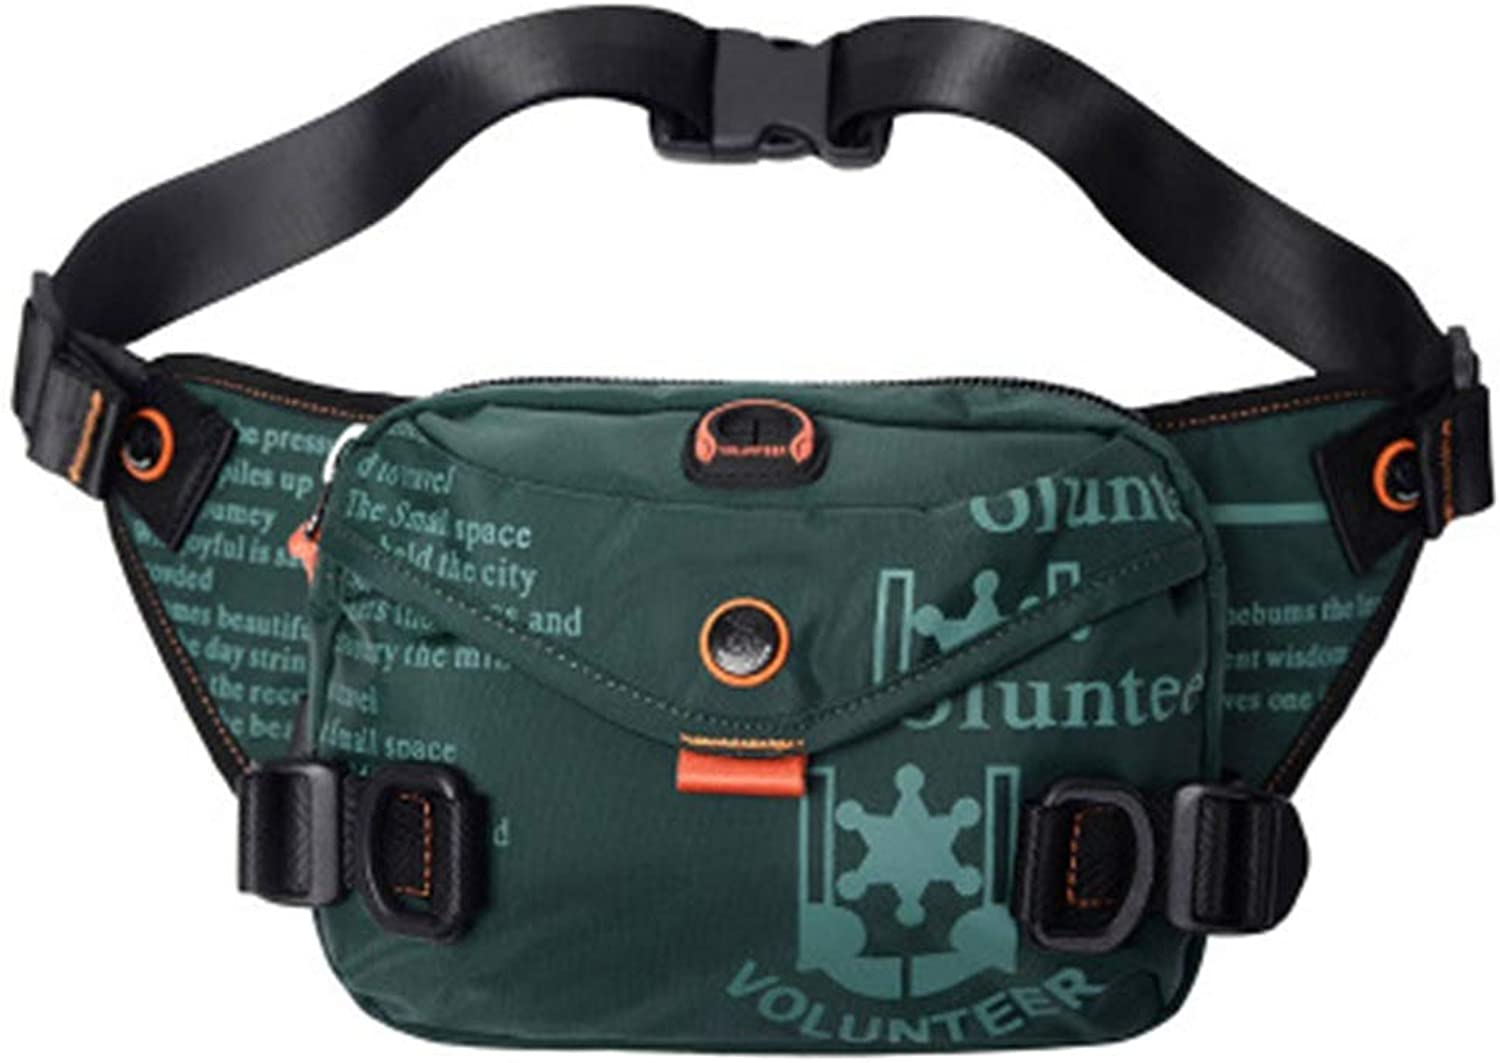 Waist Bag Men's Sports Running Bag Outdoor Shoulder Messenger Bag Oxford Cloth Men Small Bag Fashion (color   Dark Green)